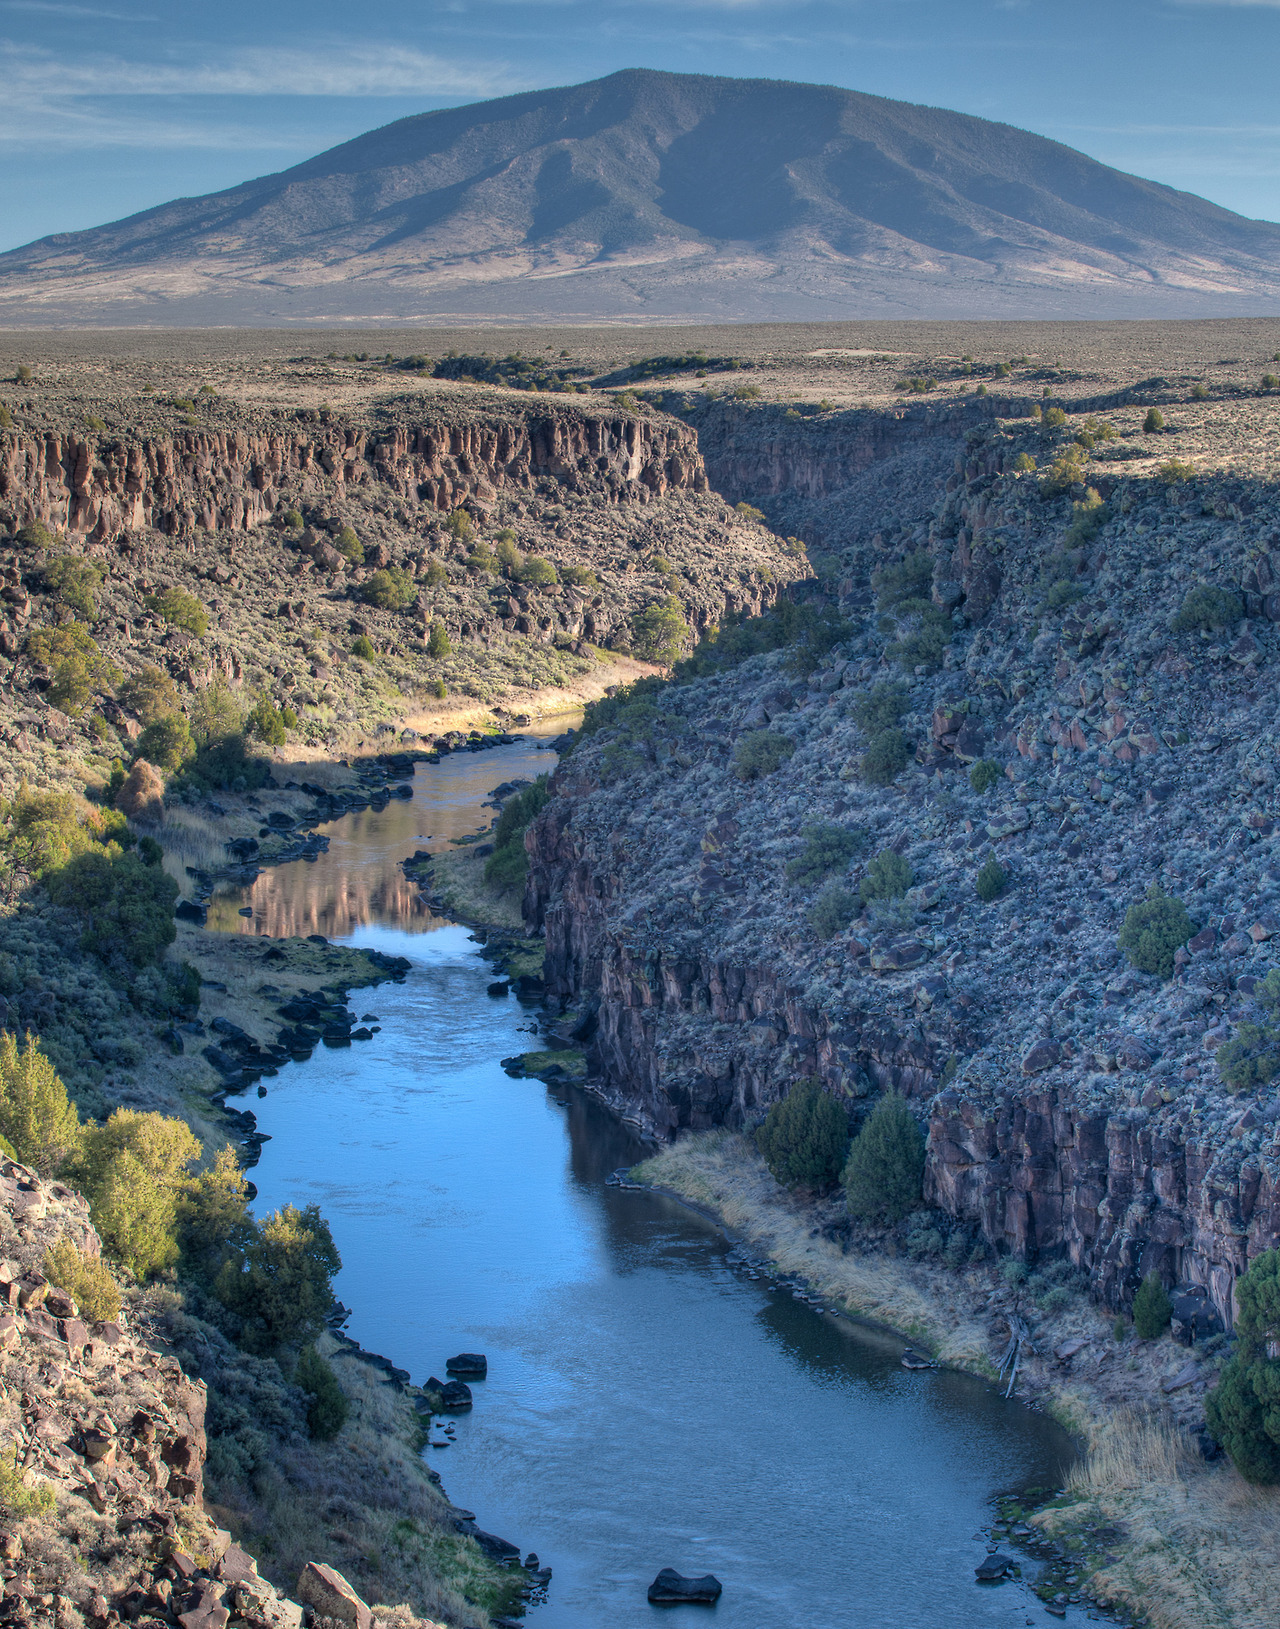 Image description: Top photo: the Rio Grande del Norte National Monument in New Mexico. Bottom photo: San Juan Islands National Monument in Washington On Monday, President Obama established five new national monuments across the country. The monuments protect natural resources and preserve rich history and lush landscapes in five different states: Delaware, Maryland, New Mexico, Ohio and Washington. From the White House:  The monuments are: Charles Young Buffalo Soldiers National Monument in Ohio: The monument will preserve the home of Col. Charles Young (1864–1922), a distinguished officer in the United States Army who was the third African American to graduate from West Point and the first to achieve the rank of Colonel. First State National Monument in Delaware: The monument will tell the story of the early Dutch, Swedish, Finnish and English settlement of the colony of Delaware, as well as Delaware's role as the first state to ratify the Constitution. The park is comprised of three historic areas related to Delaware's rich history: the Dover Green, the New Castle Court House complex (including the courthouse, Green and Sheriff's House), and the Woodlawn property in the Brandywine Valley. Harriet Tubman Underground Railroad National Monument in Maryland: The monument commemorates the life of the most famous conductor on the Underground Railroad who was responsible for helping enslaved people escape from bondage to freedom. The new national park, located on Maryland's Eastern Shore, includes large sections of landscapes that are significant to Tubman's early life in Dorchester County and evocative of her life as a slave and conductor of the Underground Railroad.  Río Grande del Norte National Monument in New Mexico: Located northwest of Taos, the Río Grande del Norte contains stretches of the Río Grande Gorge and extinct volcanoes that rise from the Taos Plateau. The area is known for its spectacular landscapes and recreational opportunities – like rafting, fishing and hiking – and serves as important habitat for many birds and wildlife. San Juan Islands National Monument in Washington: Home to bald eagles, orca whales, harbor seals and other rare species, the San Juan Islands is a chain of 450 islands, rocks and pinnacles. Located in Washington State's Puget Sound, the archipelago provides an opportunity for visitors, campers, kayakers and birdwatchers to experience the natural beauty of the undeveloped, rugged landscape.  Learn more about the five new national monuments. View more pictures of Rio Grande del Norte and San Juan Islands national monuments. Photos from the Bureau of Land Management.